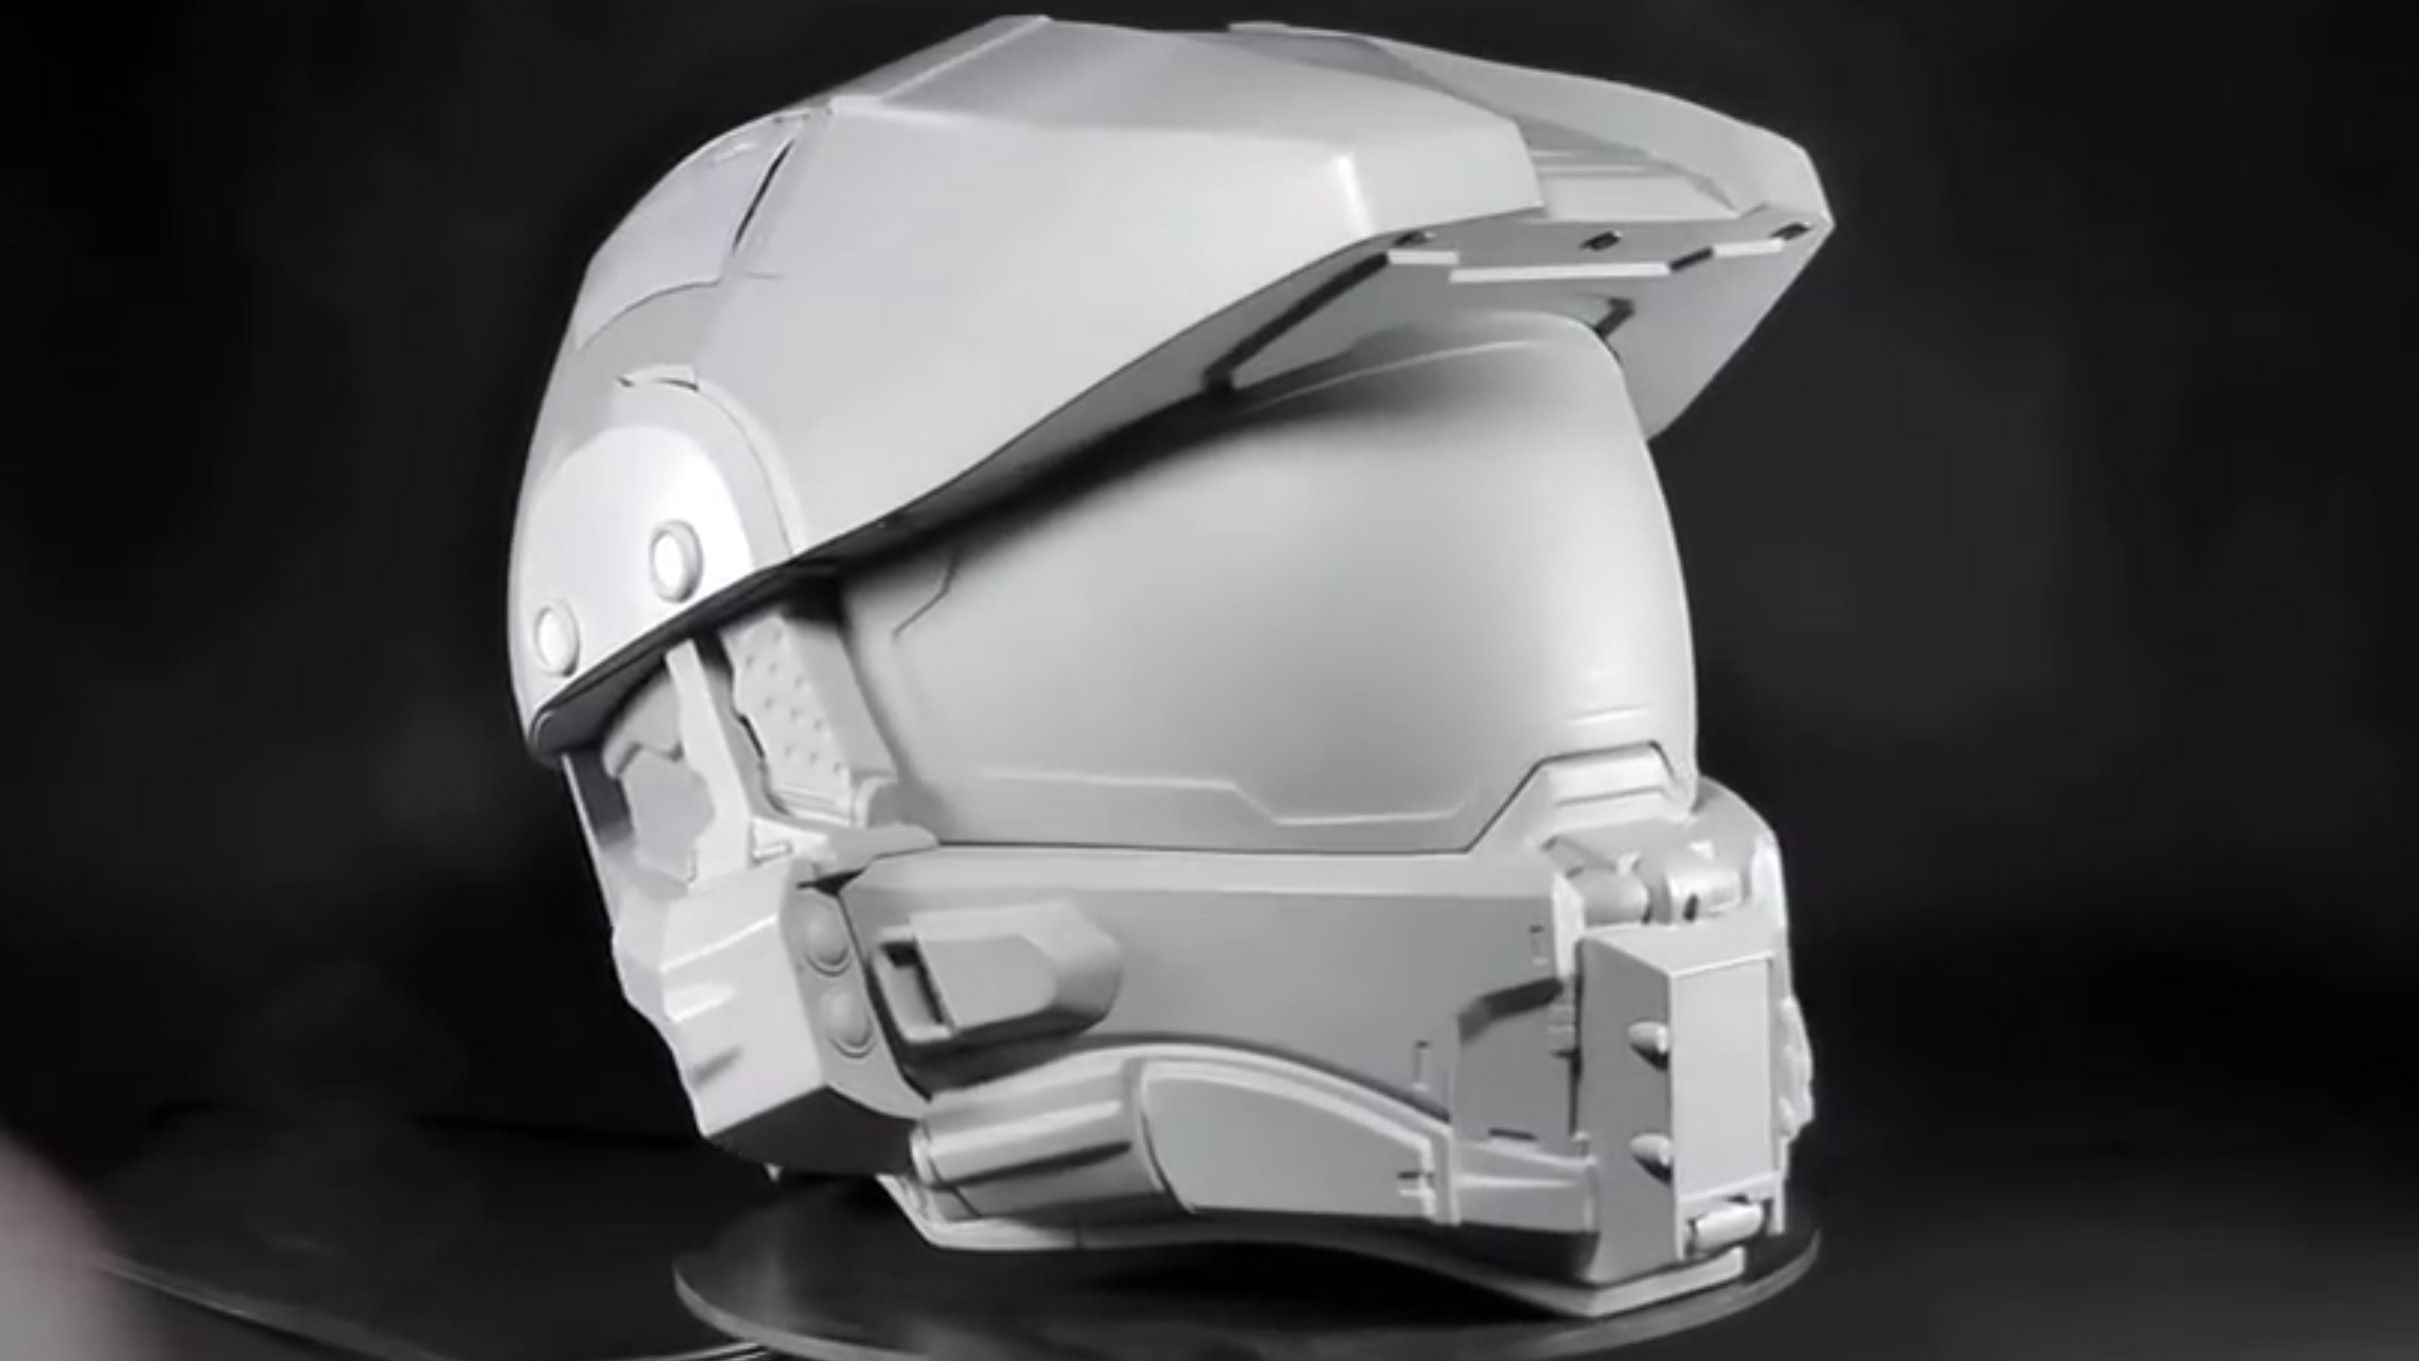 NECA is working on a Master Chief motorcycle helmet